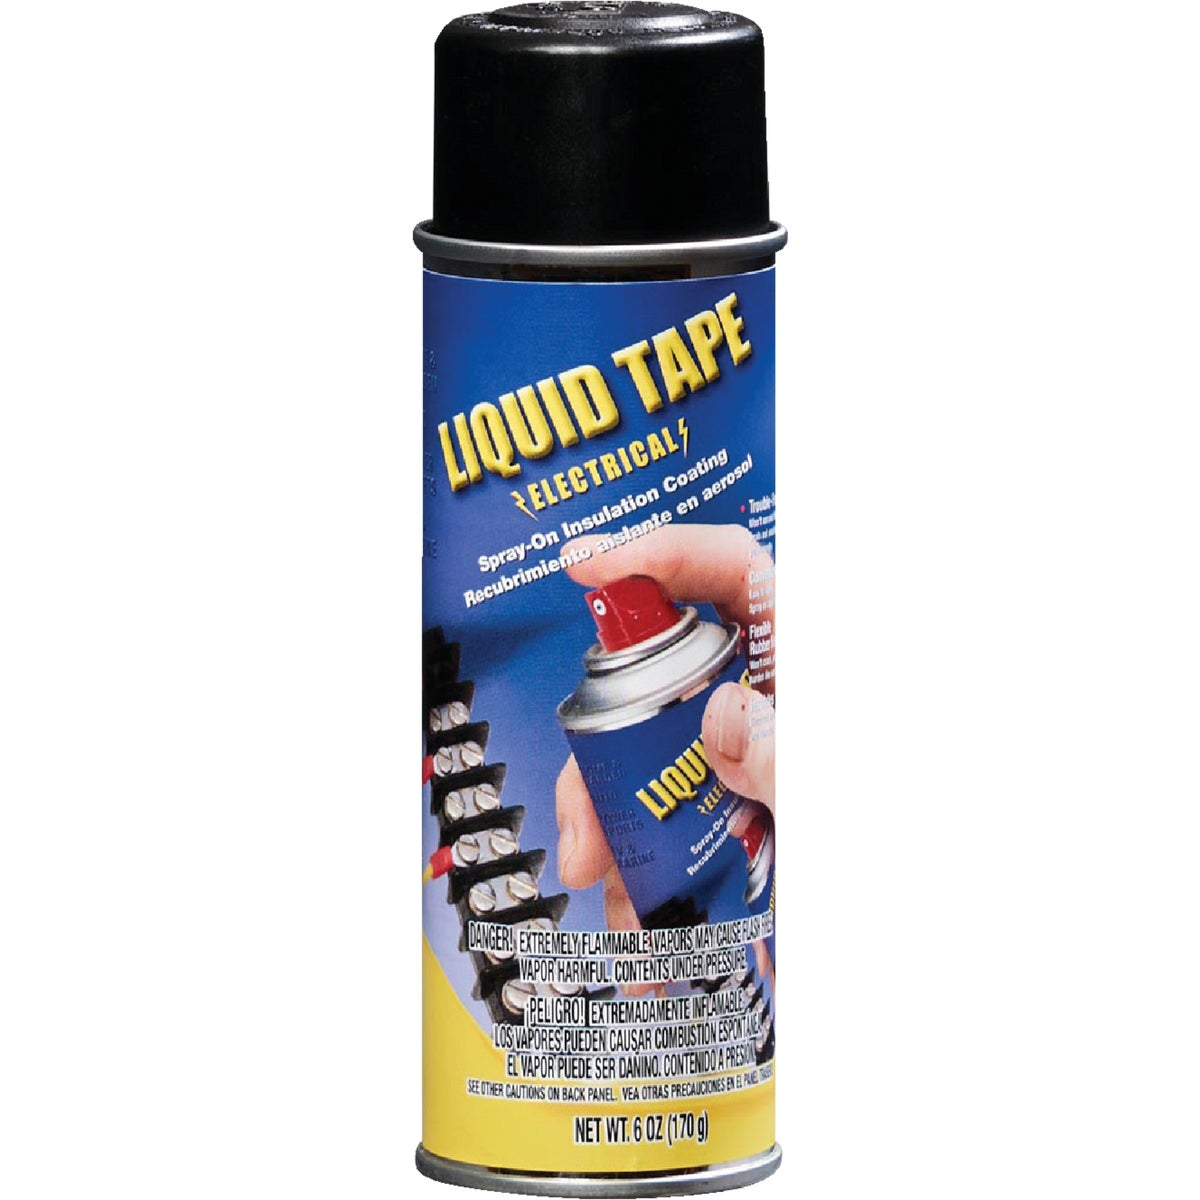 BLK ELEC SPRAY-ON TAPE - 16003-6 by Plastic Dip Intnl